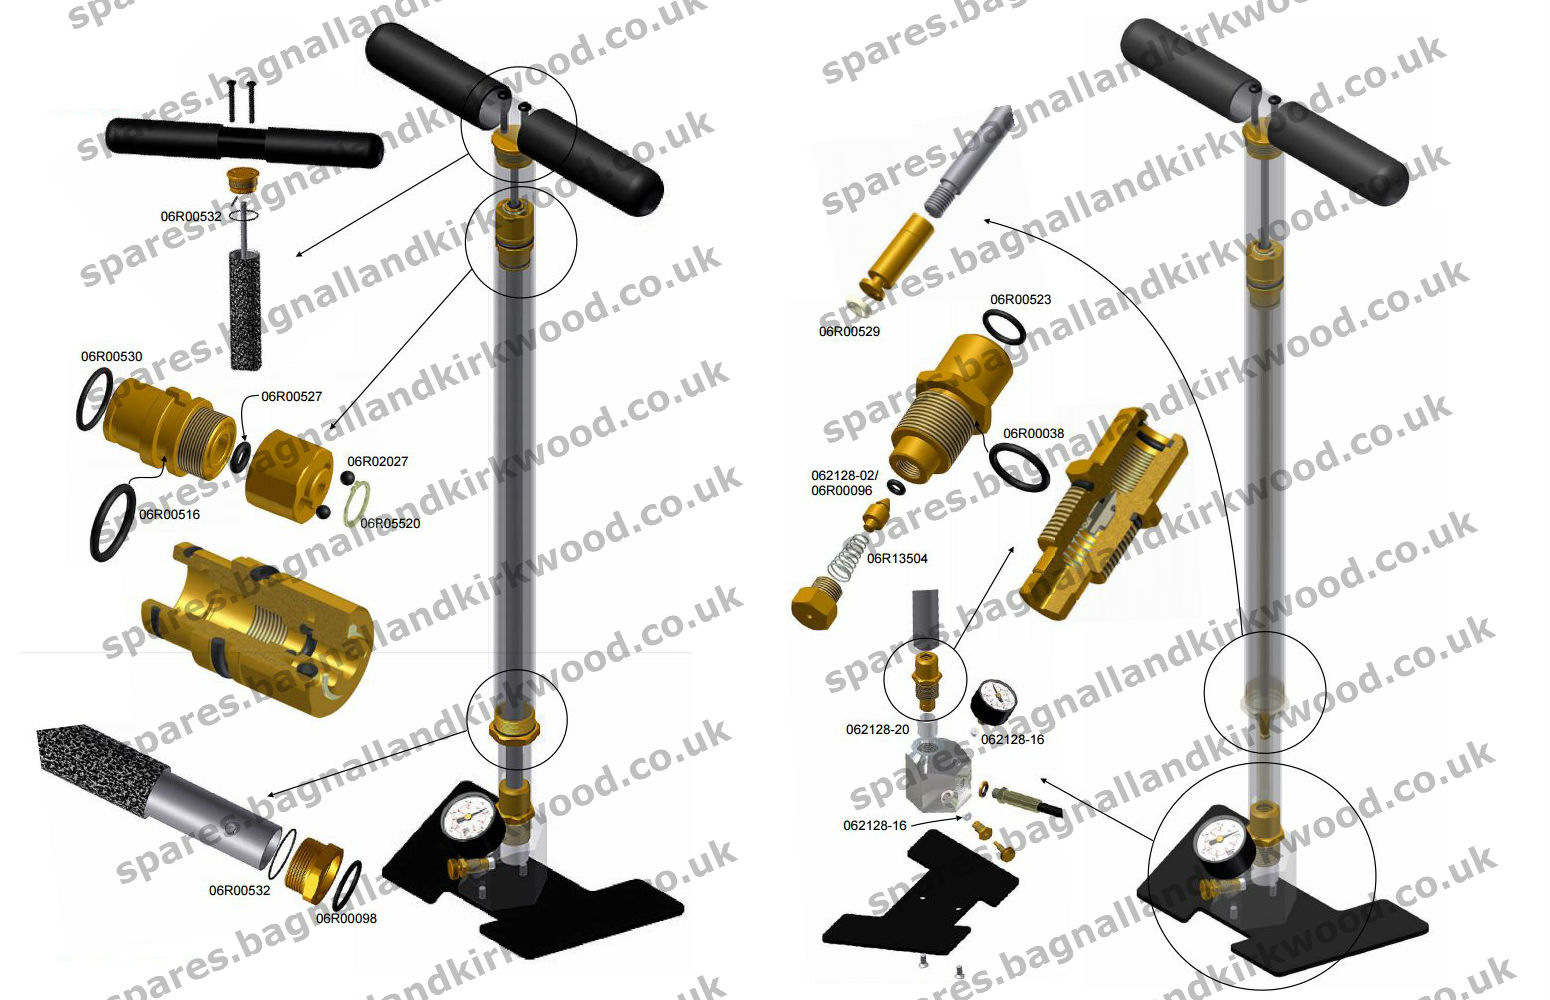 Bsa Air Rifle Hand Pumps